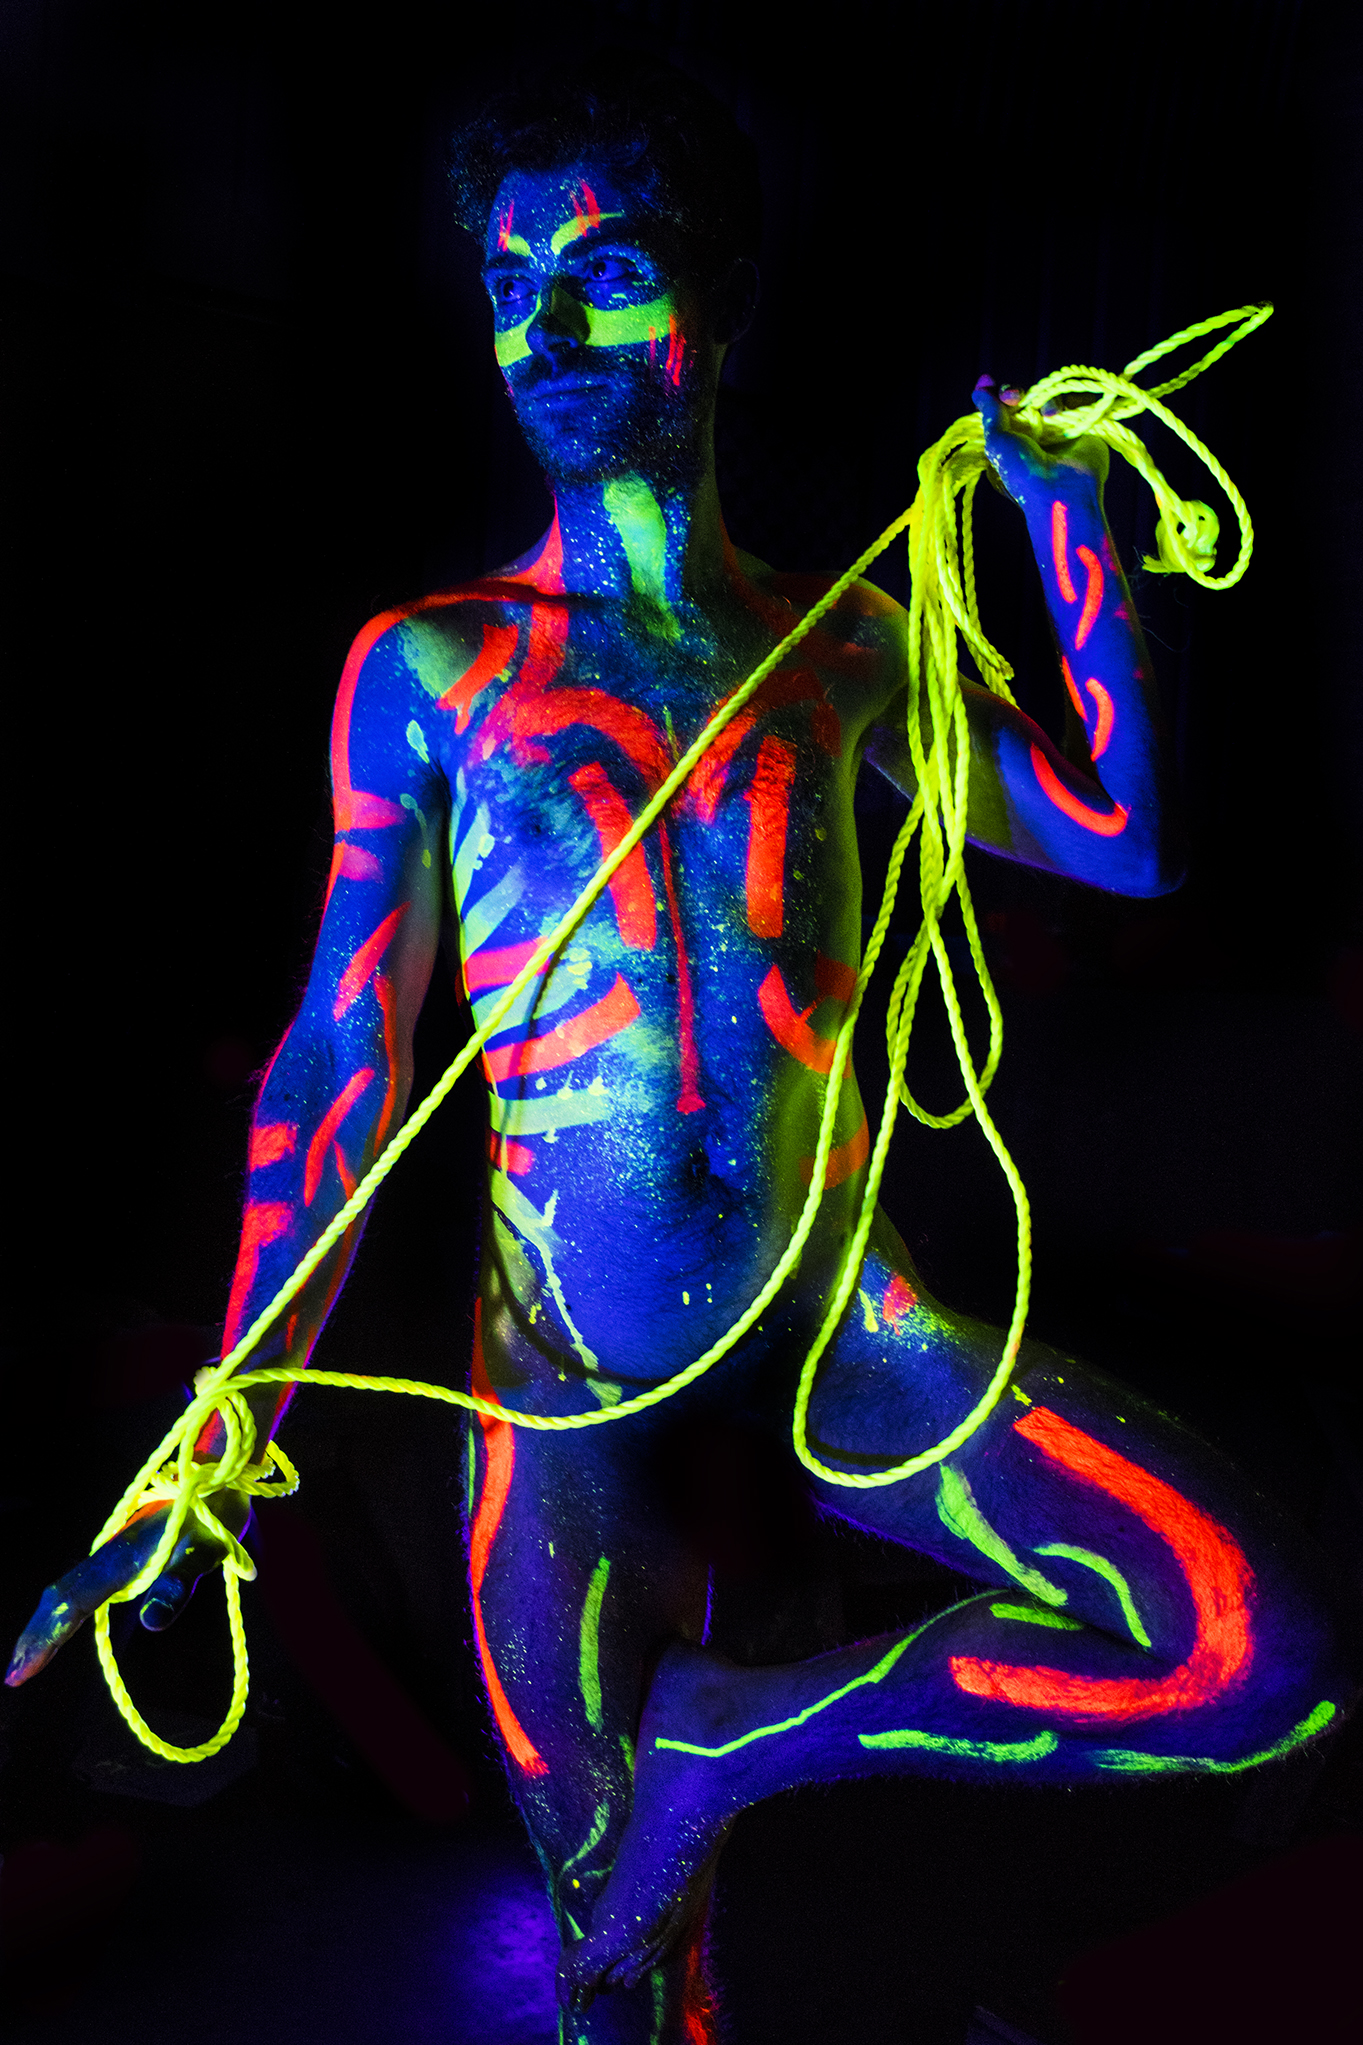 Andrew modelling for Neon Naked.